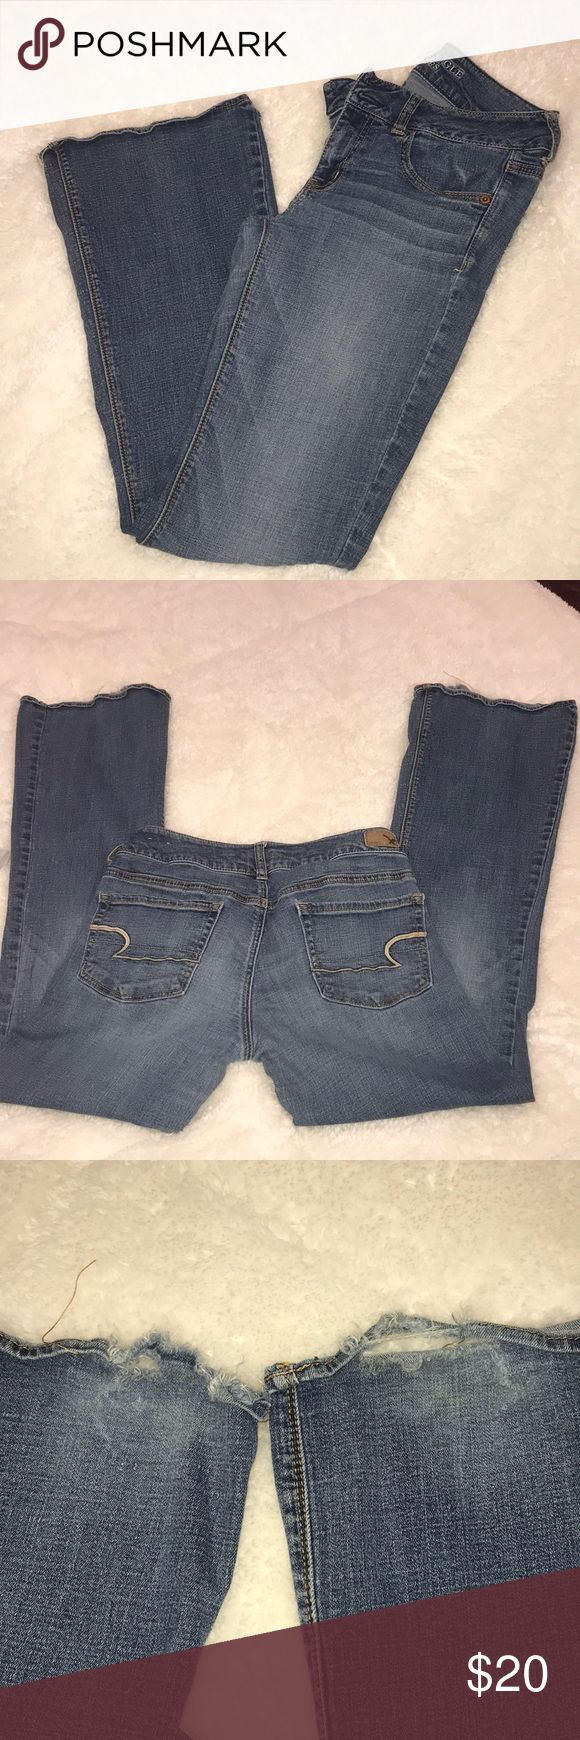 """American eagle artist super stretch jeans American eagle outfitters size 8 artist super stretch jeans,  32"""" inseam, Good used condition. Wear around cuffs but lots of life left! Regular fit jean American Eagle Outfitters Pants Boot Cut & Flare"""